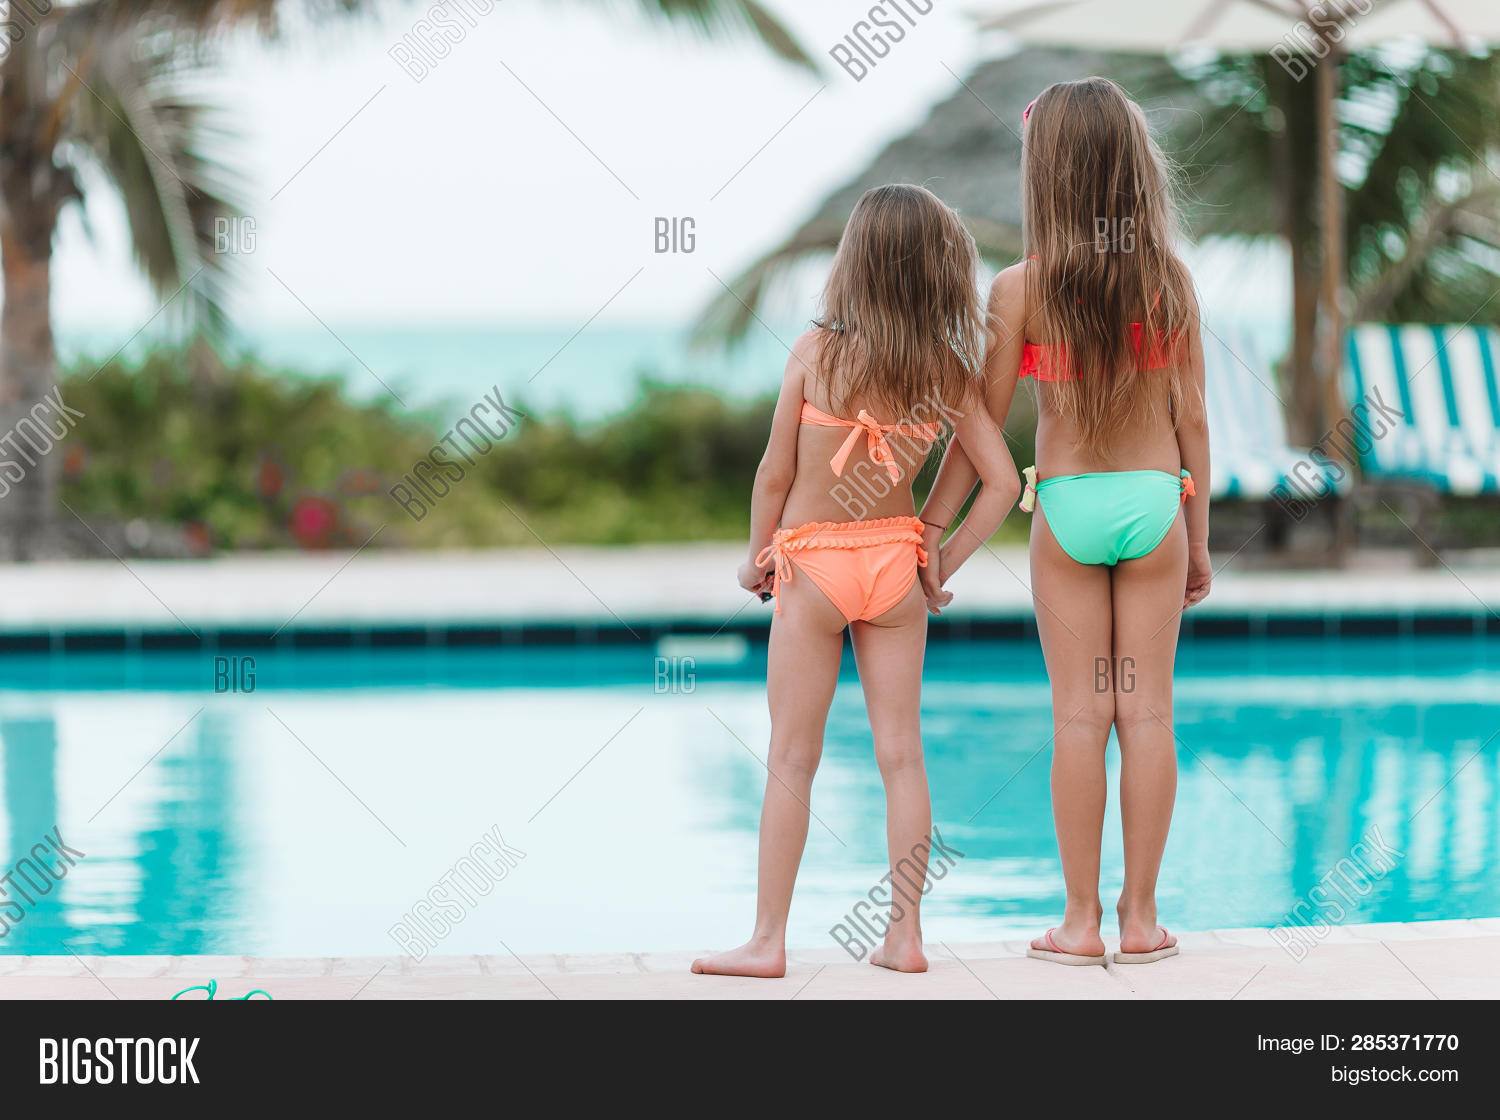 Adorable Little Girls Image Photo Free Trial Bigstock